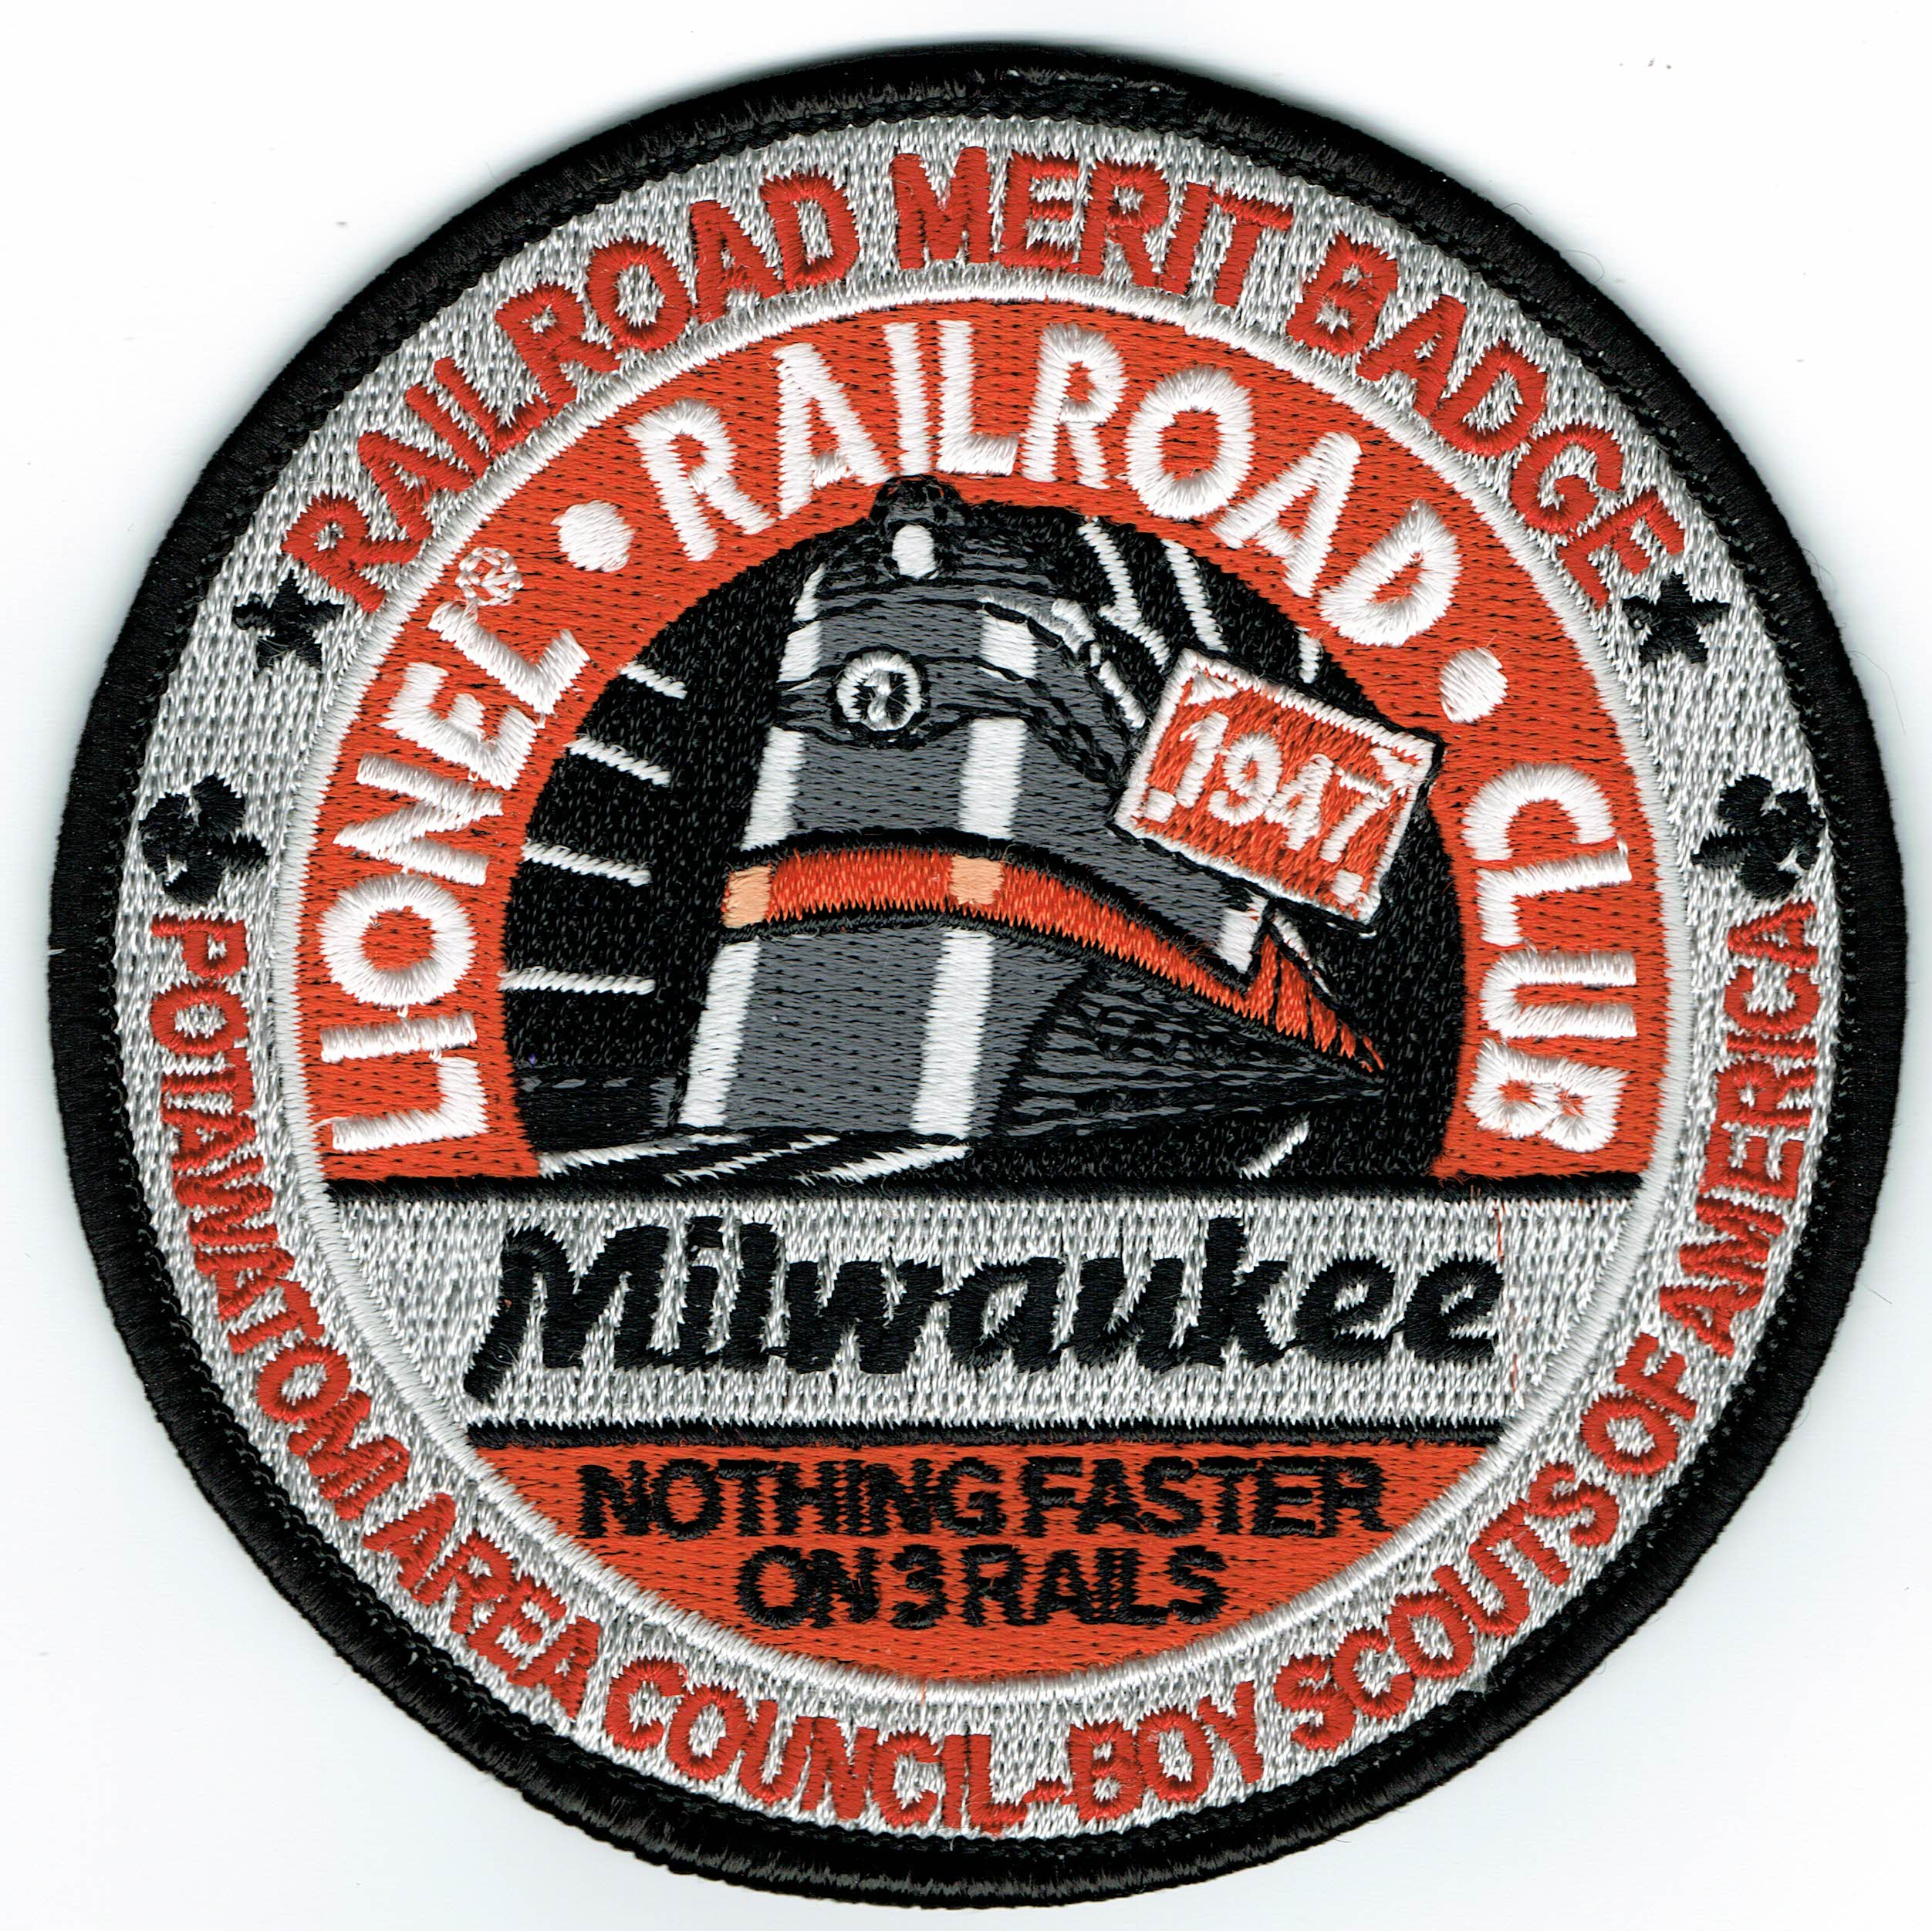 Railroad MB - Milw LRRC - Potawatomi Council BSA image